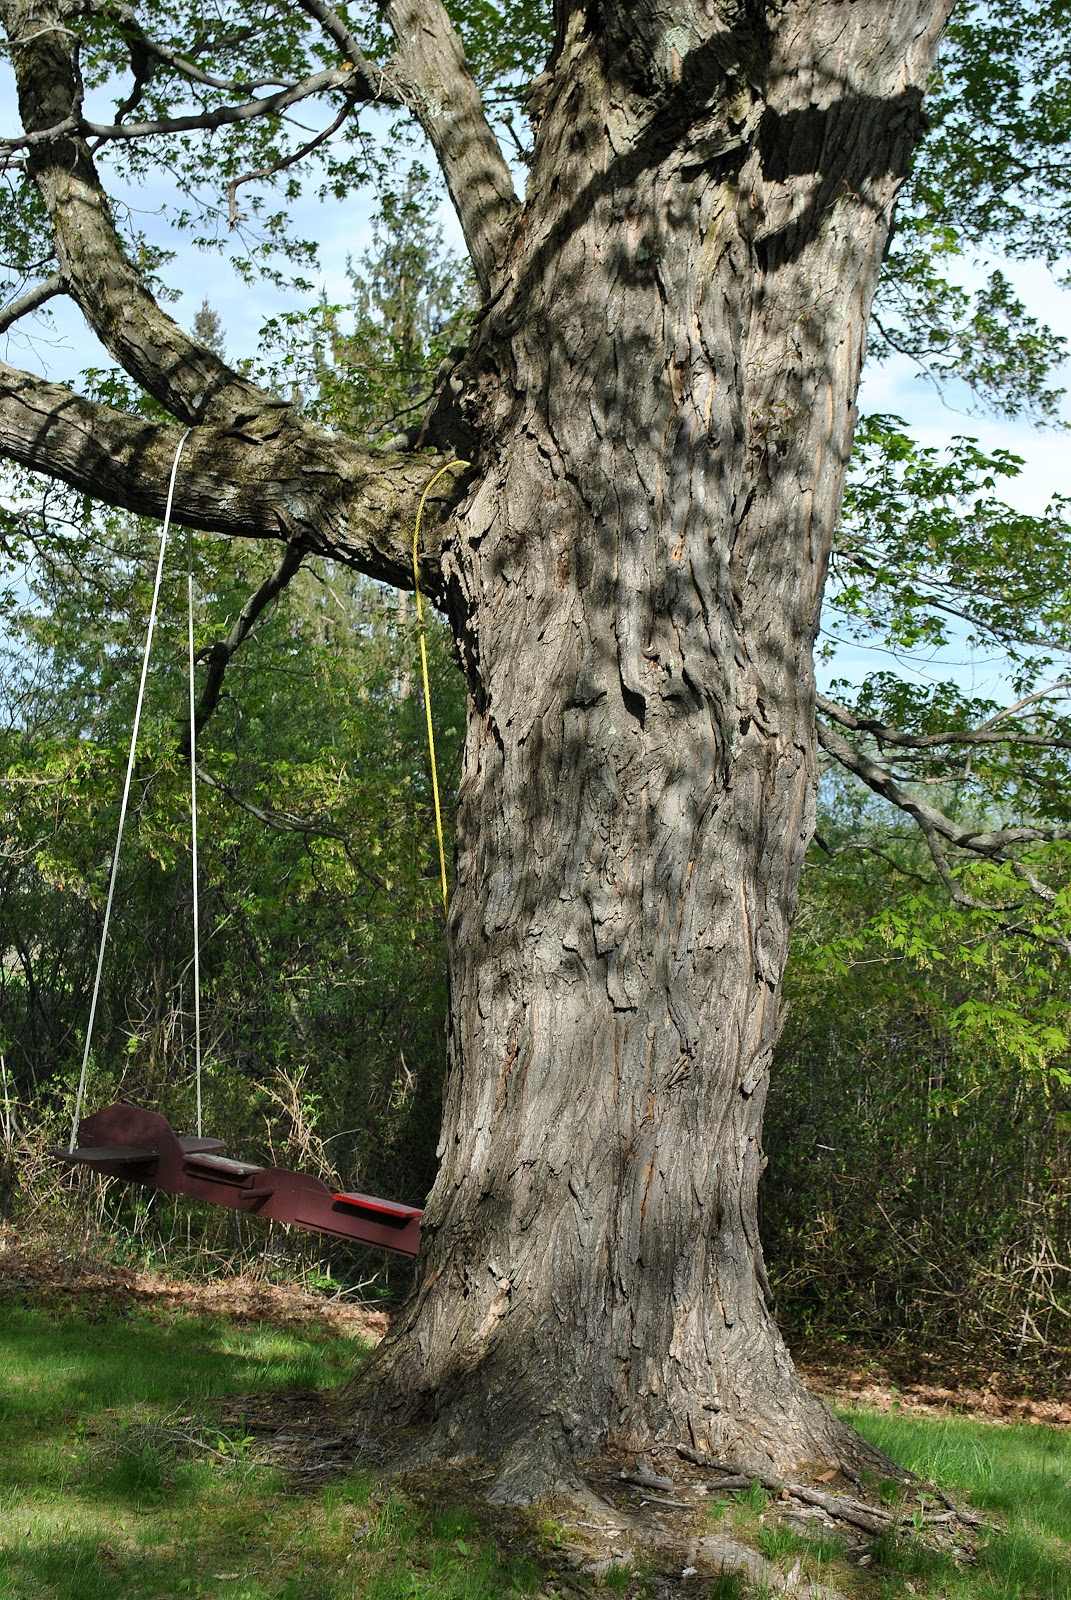 Shag Bark Maple http://ourmothersdaughters.blogspot.com/2011/05/how-to-tell-sugar-maple-post-with.html